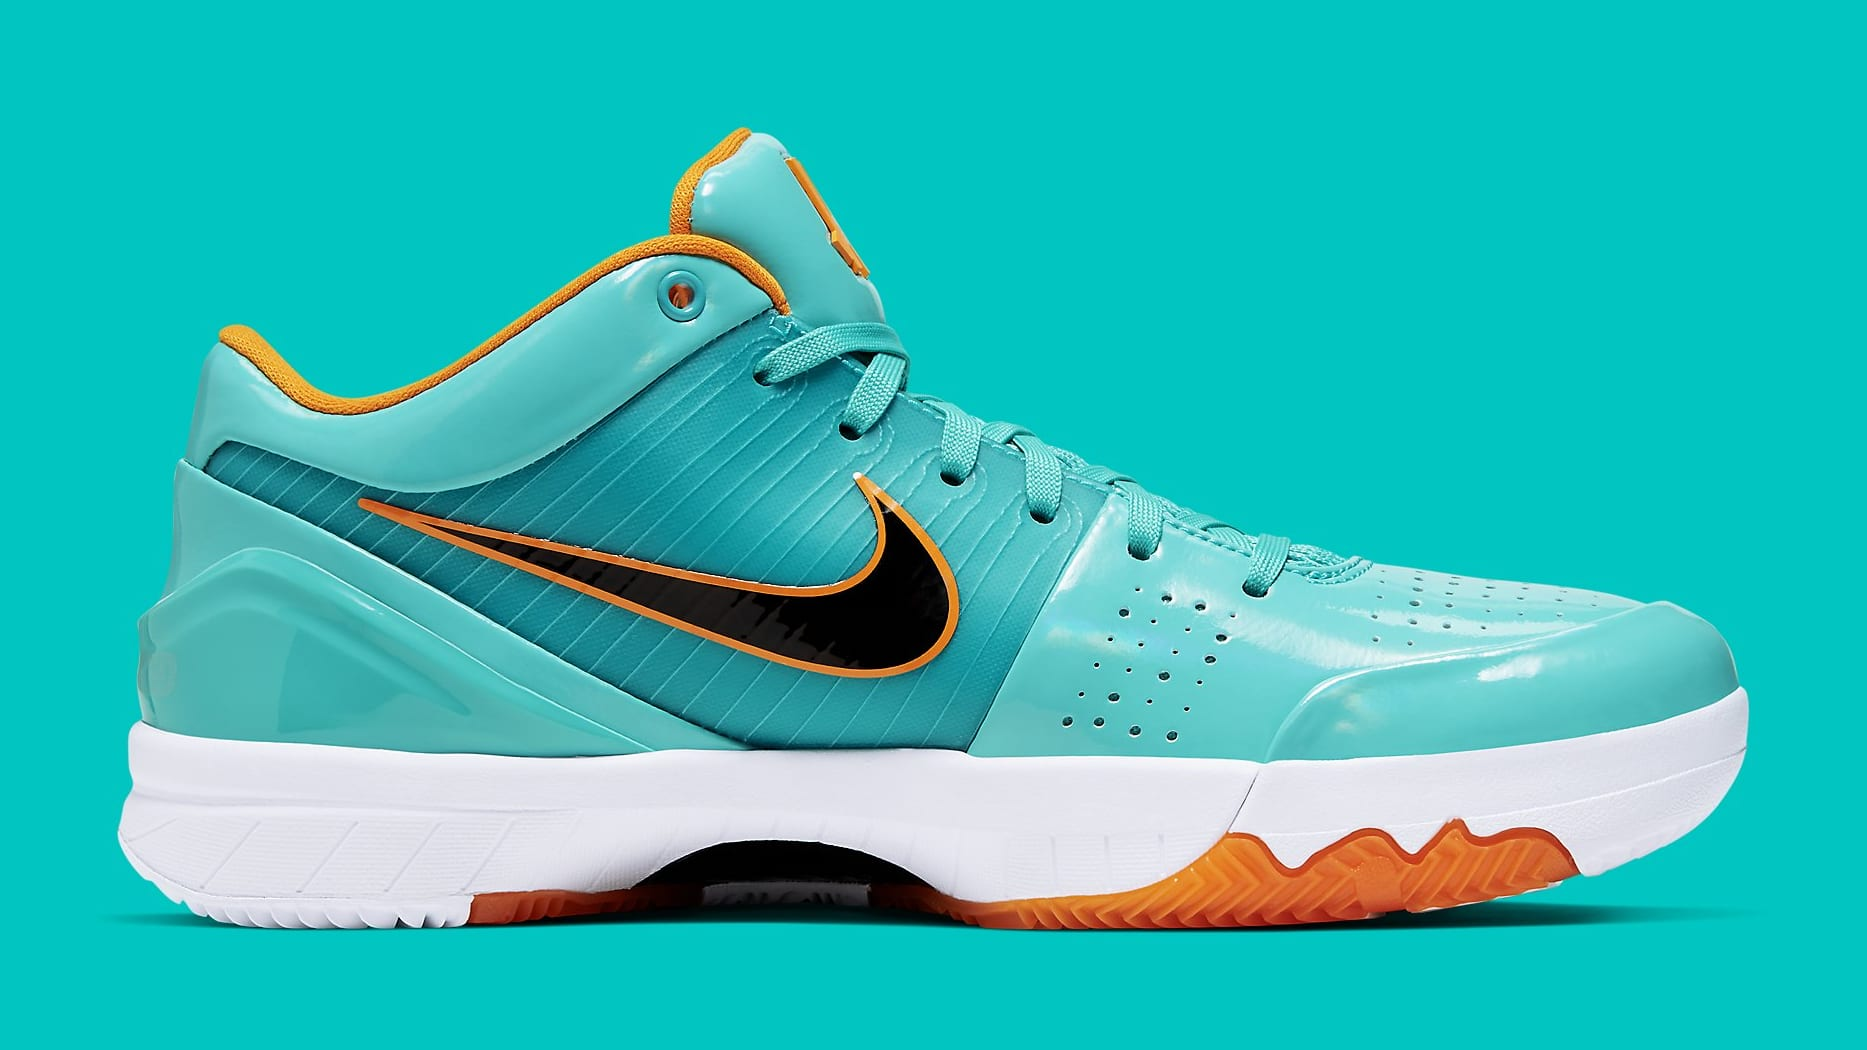 UNDFTD x Nike Kobe 4 Protro Teal Release Date CQ38869-300 Medial